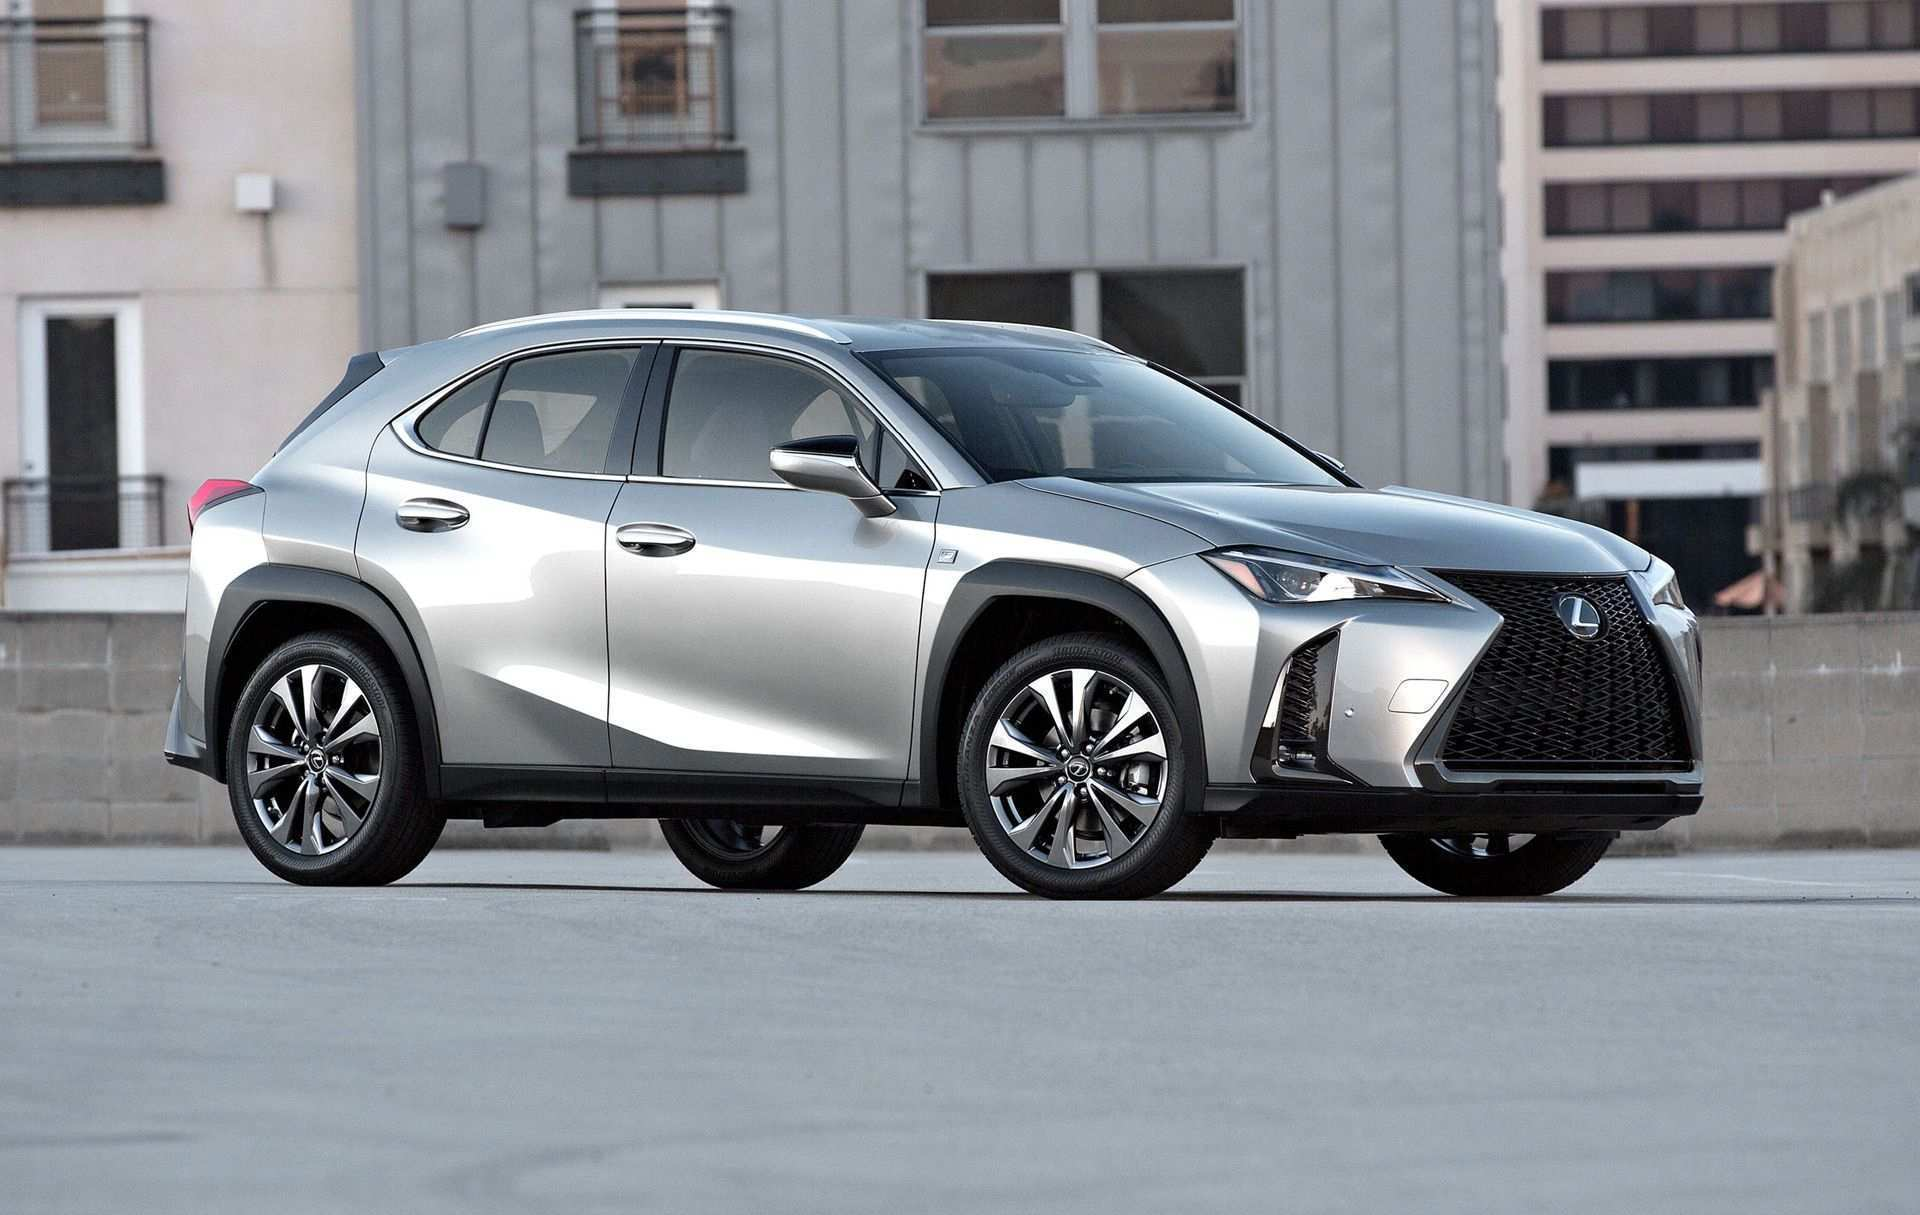 19 New Lexus Ux 2020 New Concept New Review by Lexus Ux 2020 New Concept